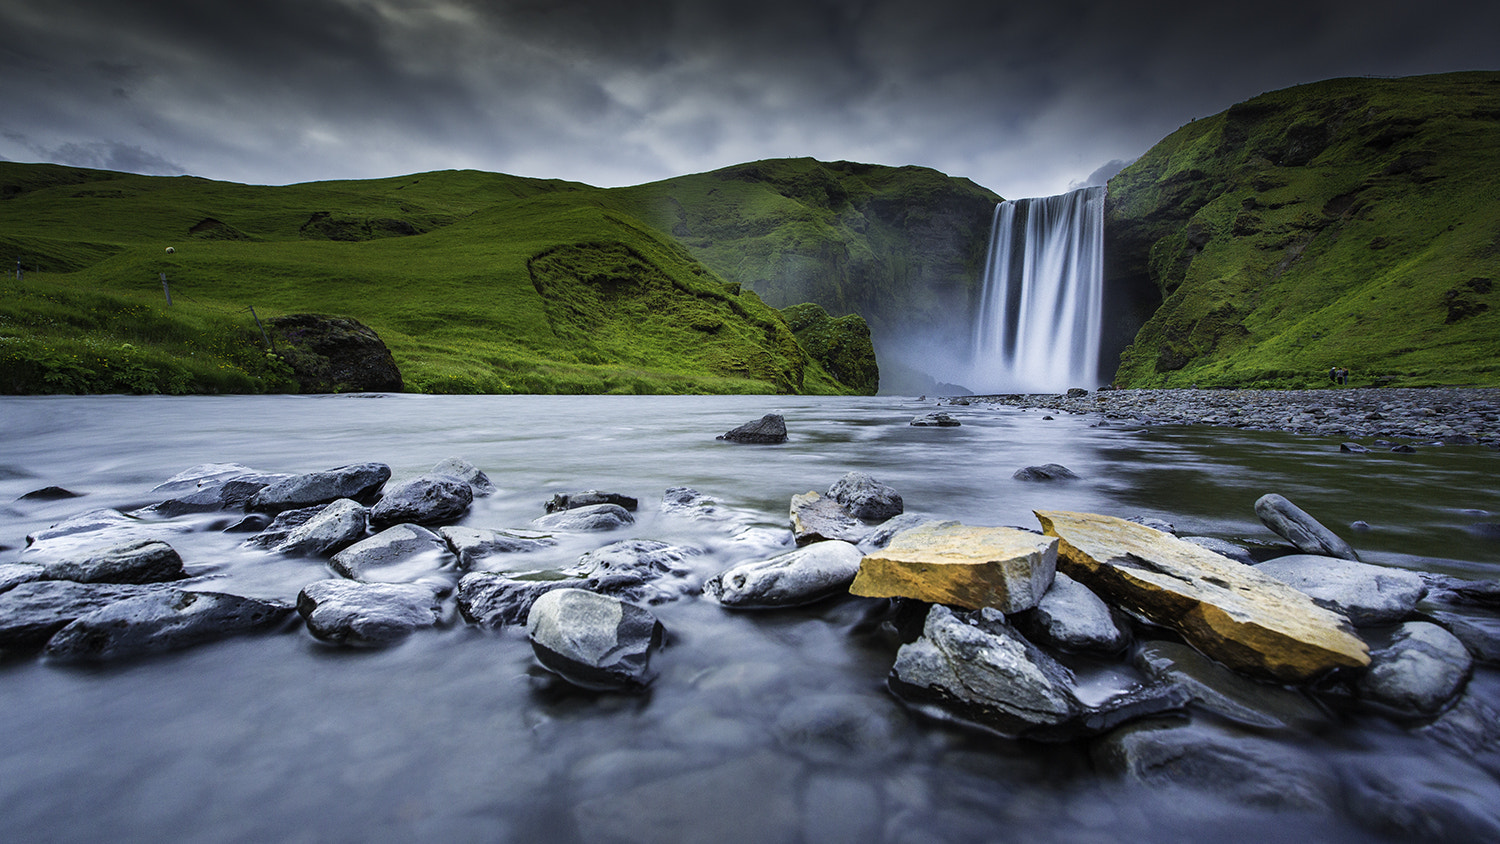 Photograph Waterfall Skogafoss by Jose Antonio Hervas on 500px